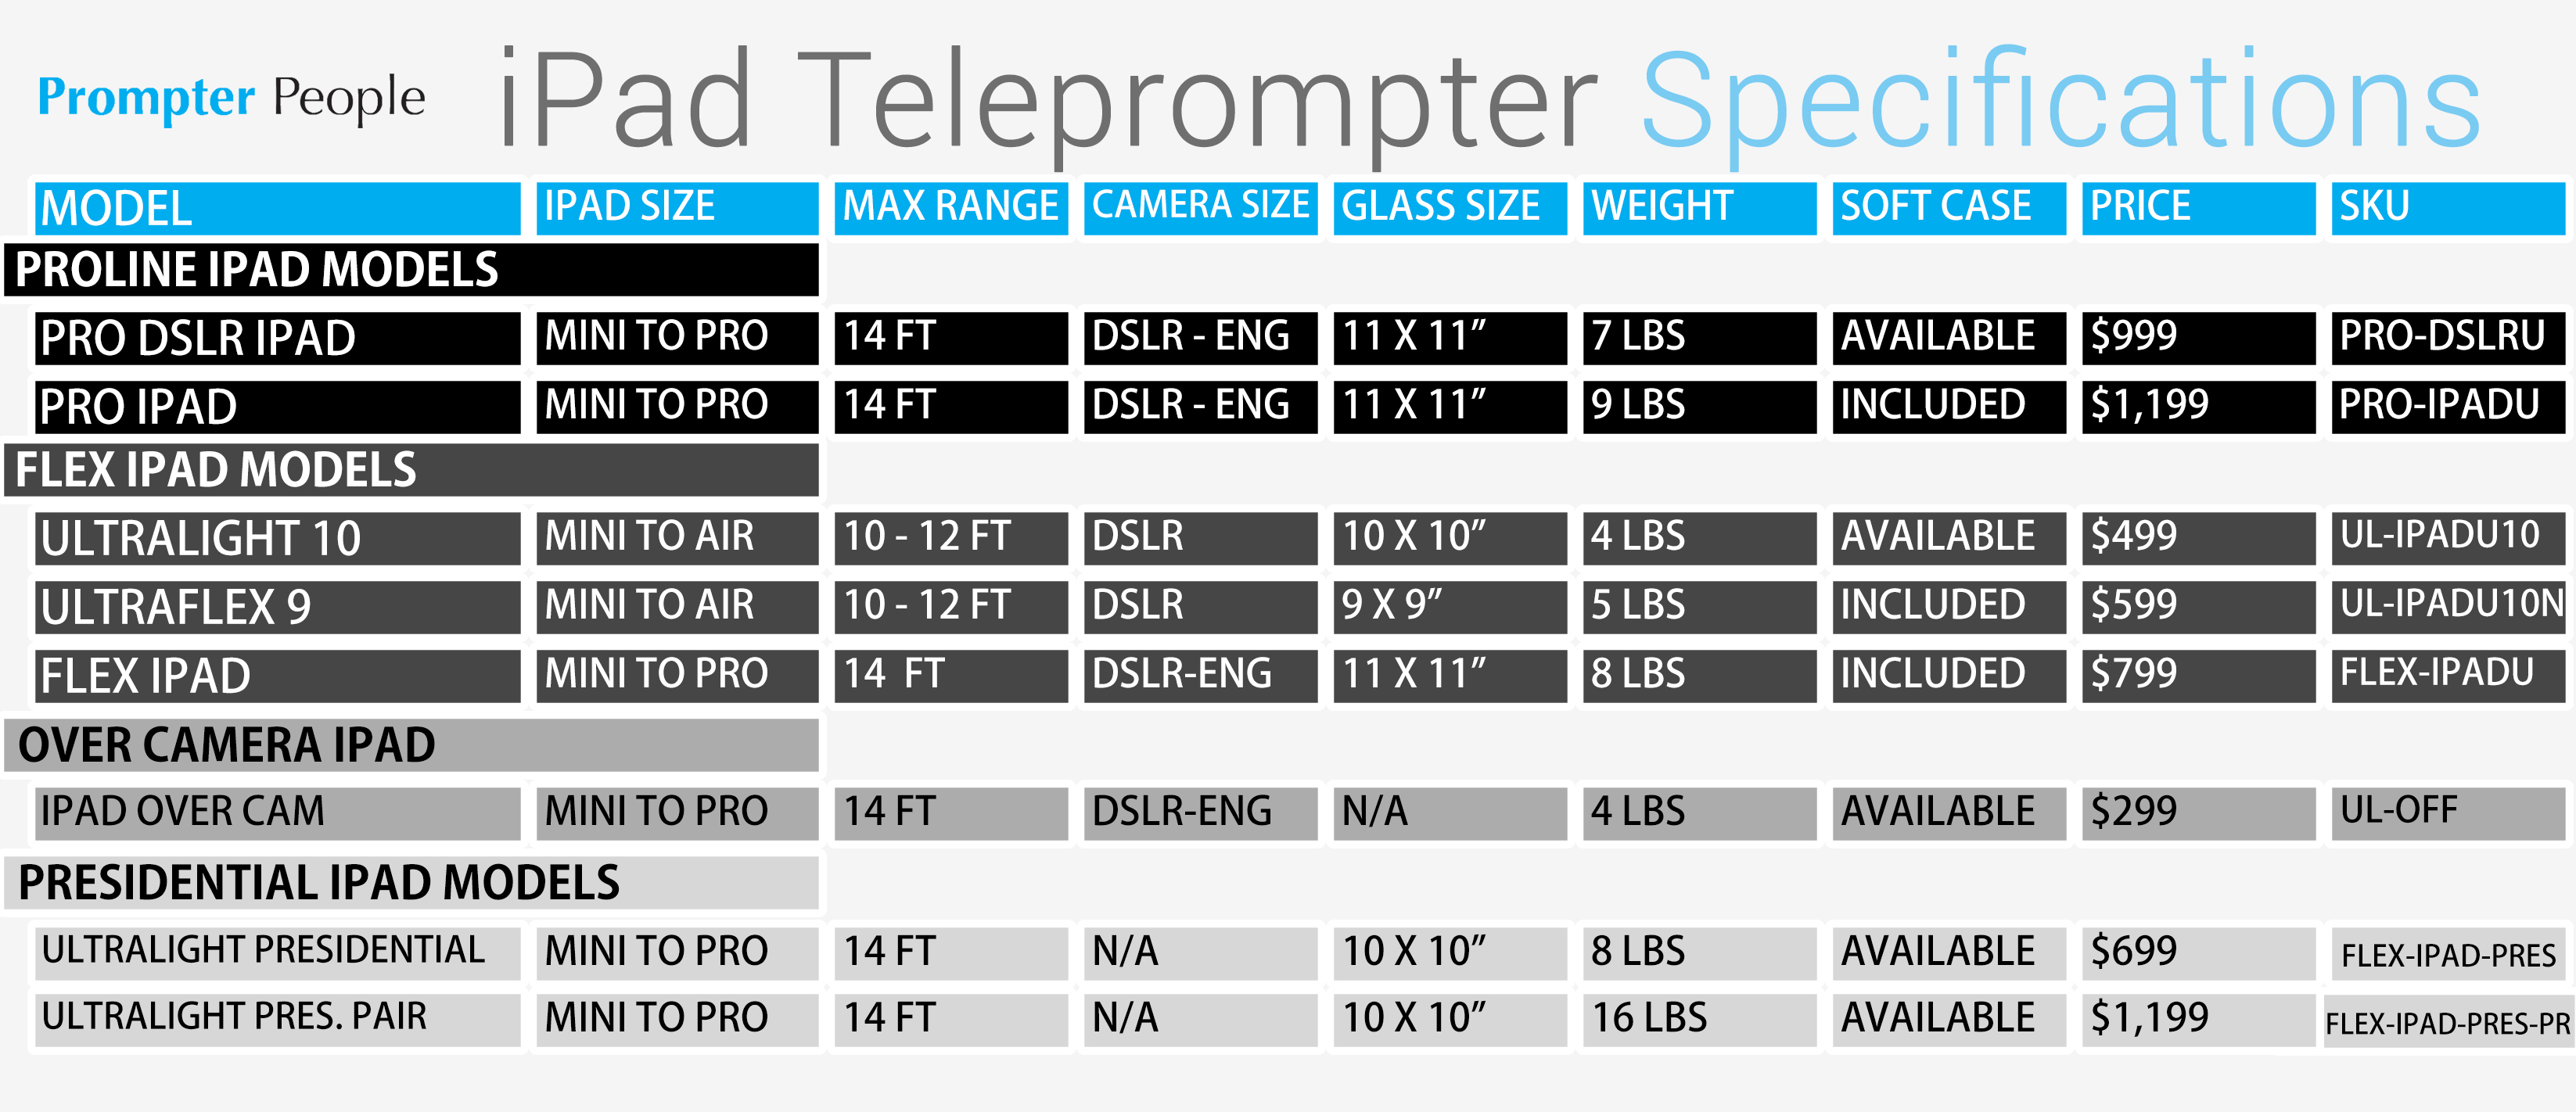 ipad-teleprompter-specifications-pp-b.jpg